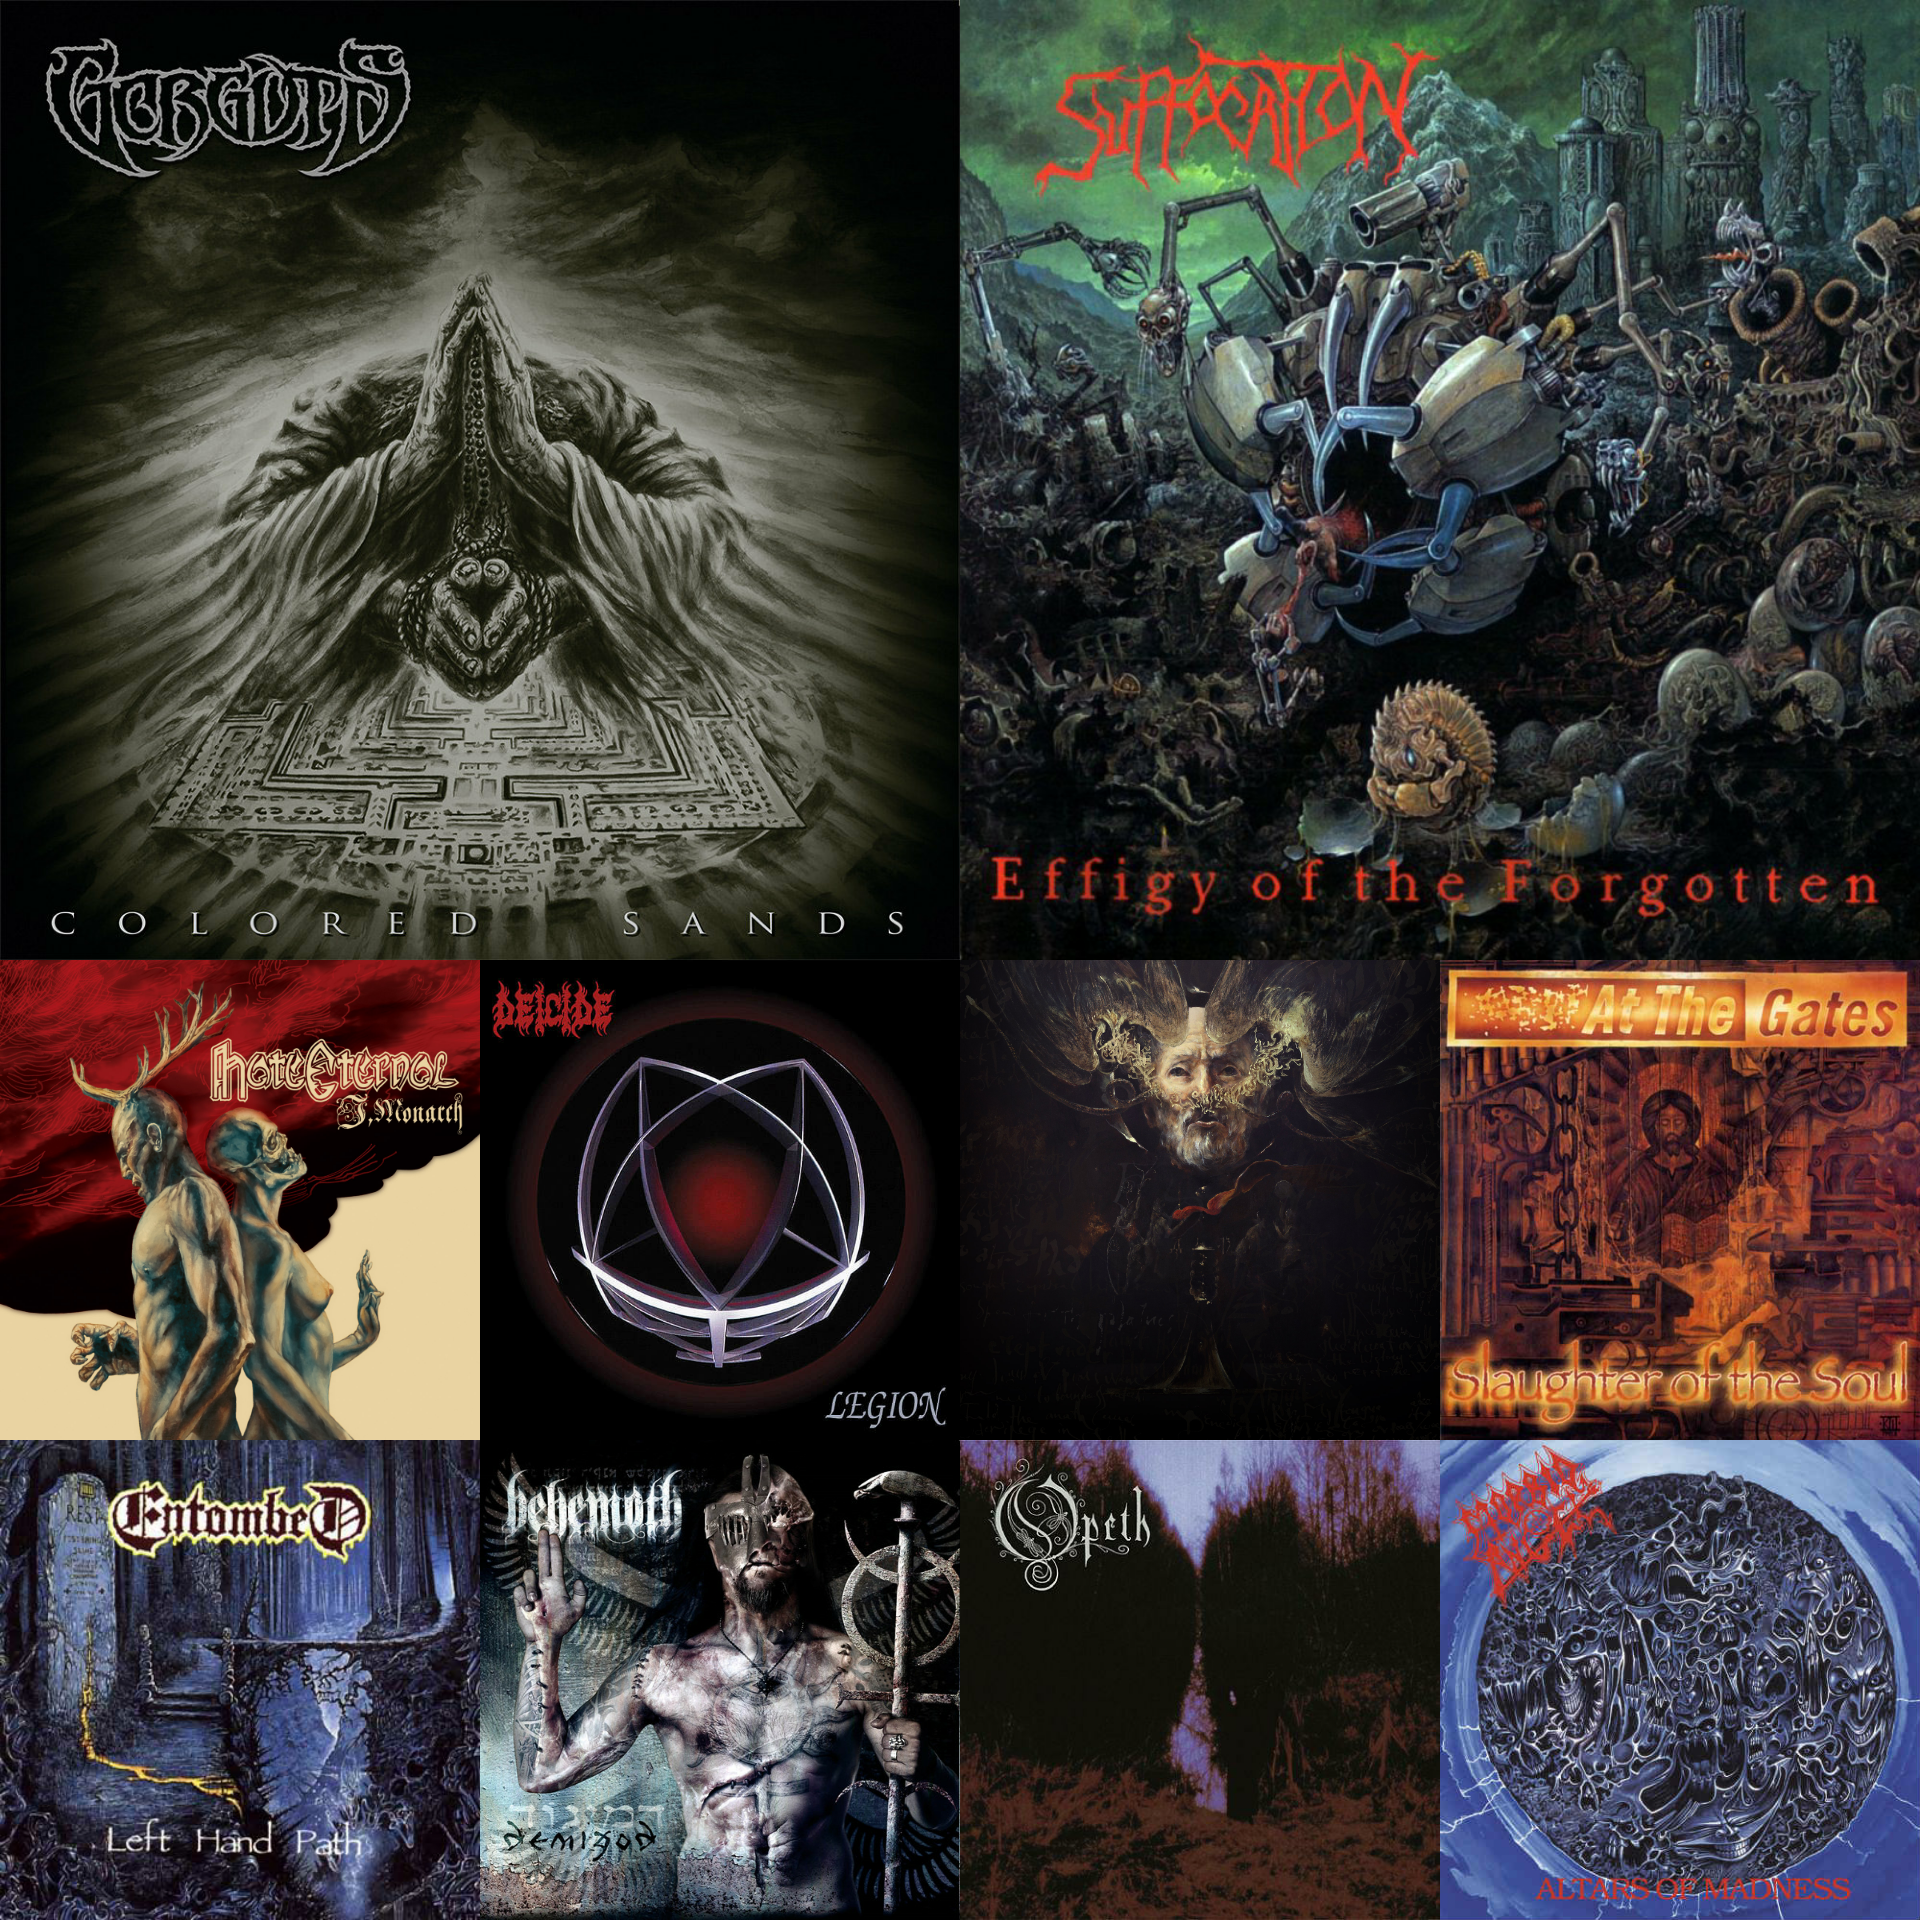 How To Death Metal: The 7 or 8 Death Metal Bands That Are Actually